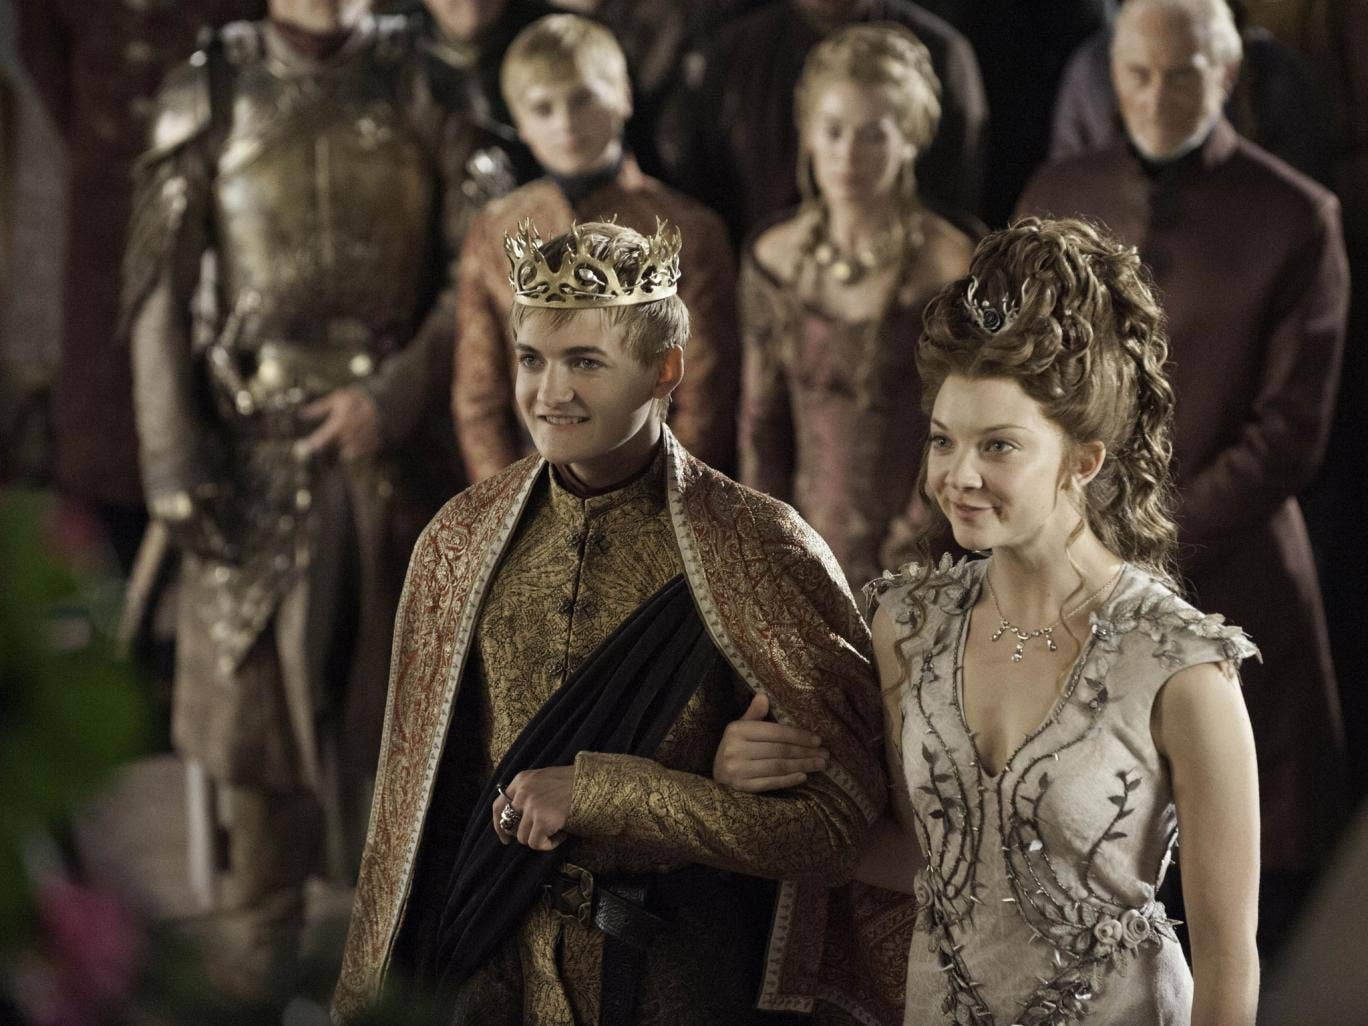 Game of Thrones has been nominated for an impressive 19 Emmy Awards